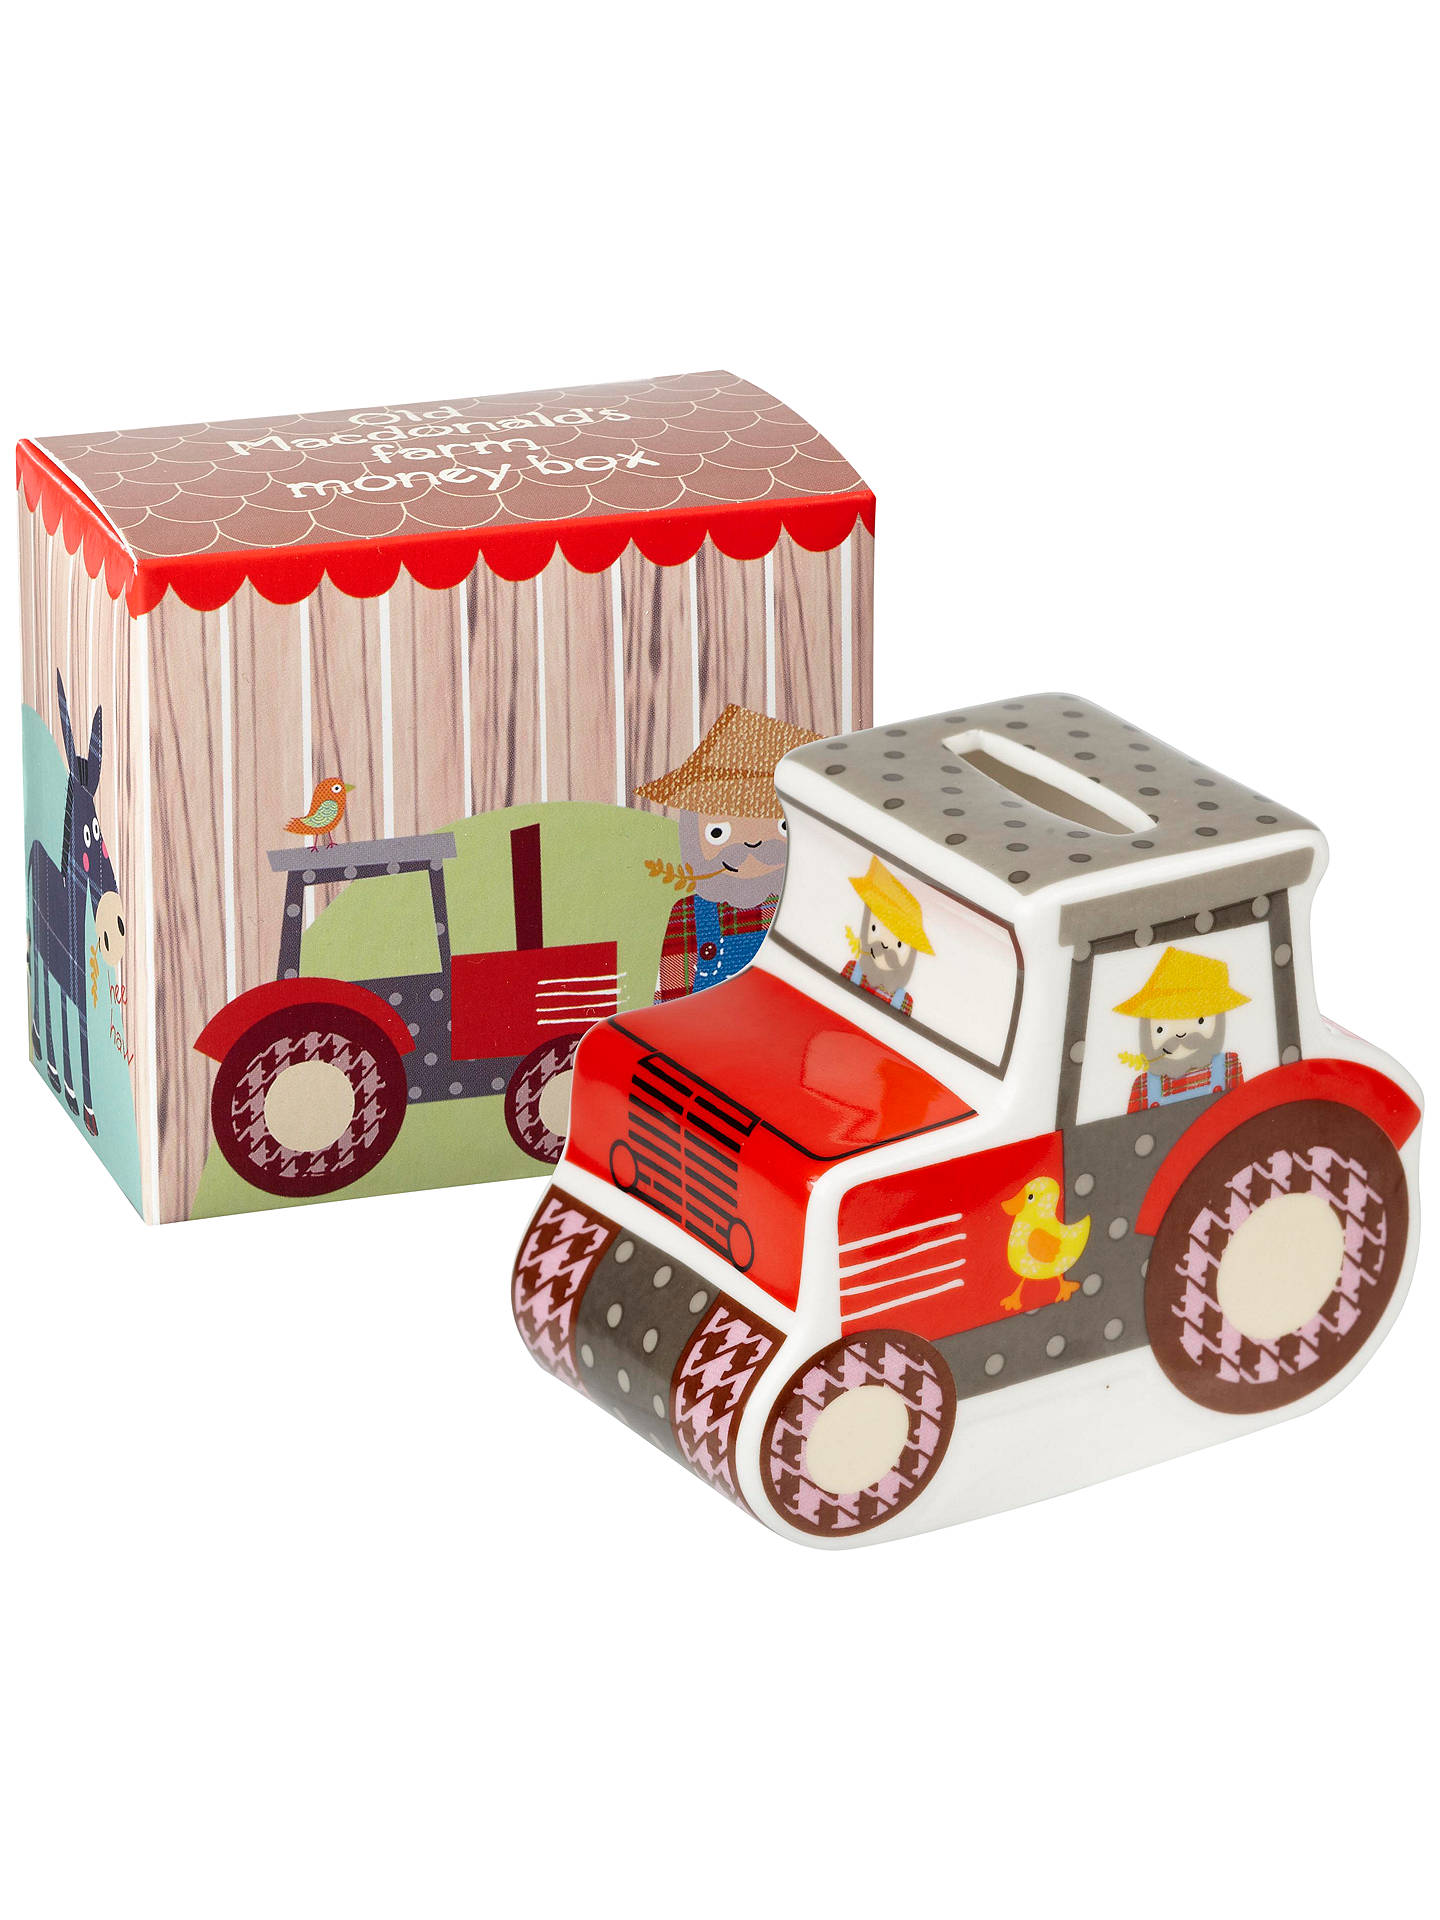 BuyLittle Rhymes Old Macdonald Money Box Online at johnlewis.com